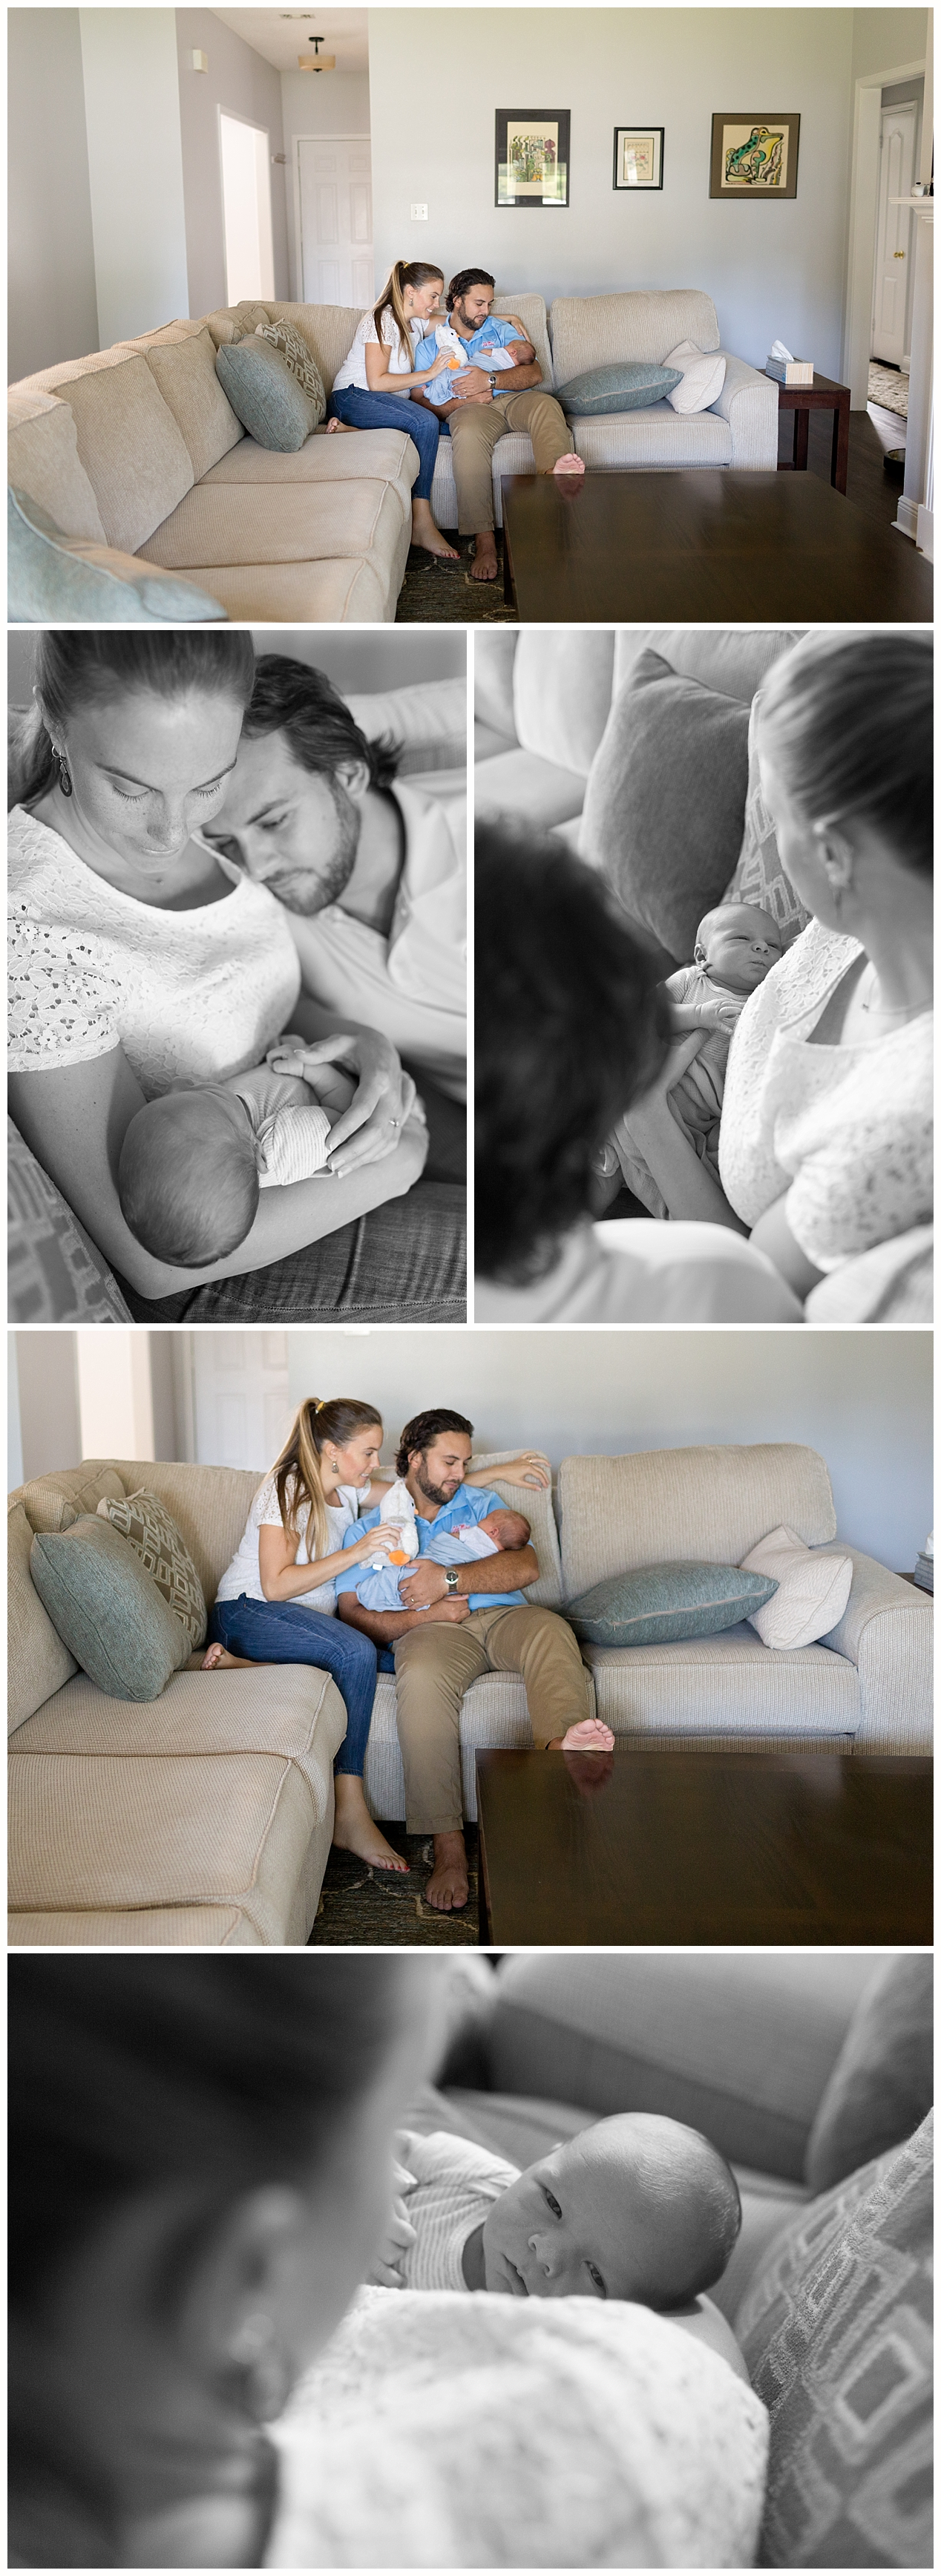 mom, dad, and newborn baby boy snuggling on couch - Ocean Springs, Mississippi newborn photographer